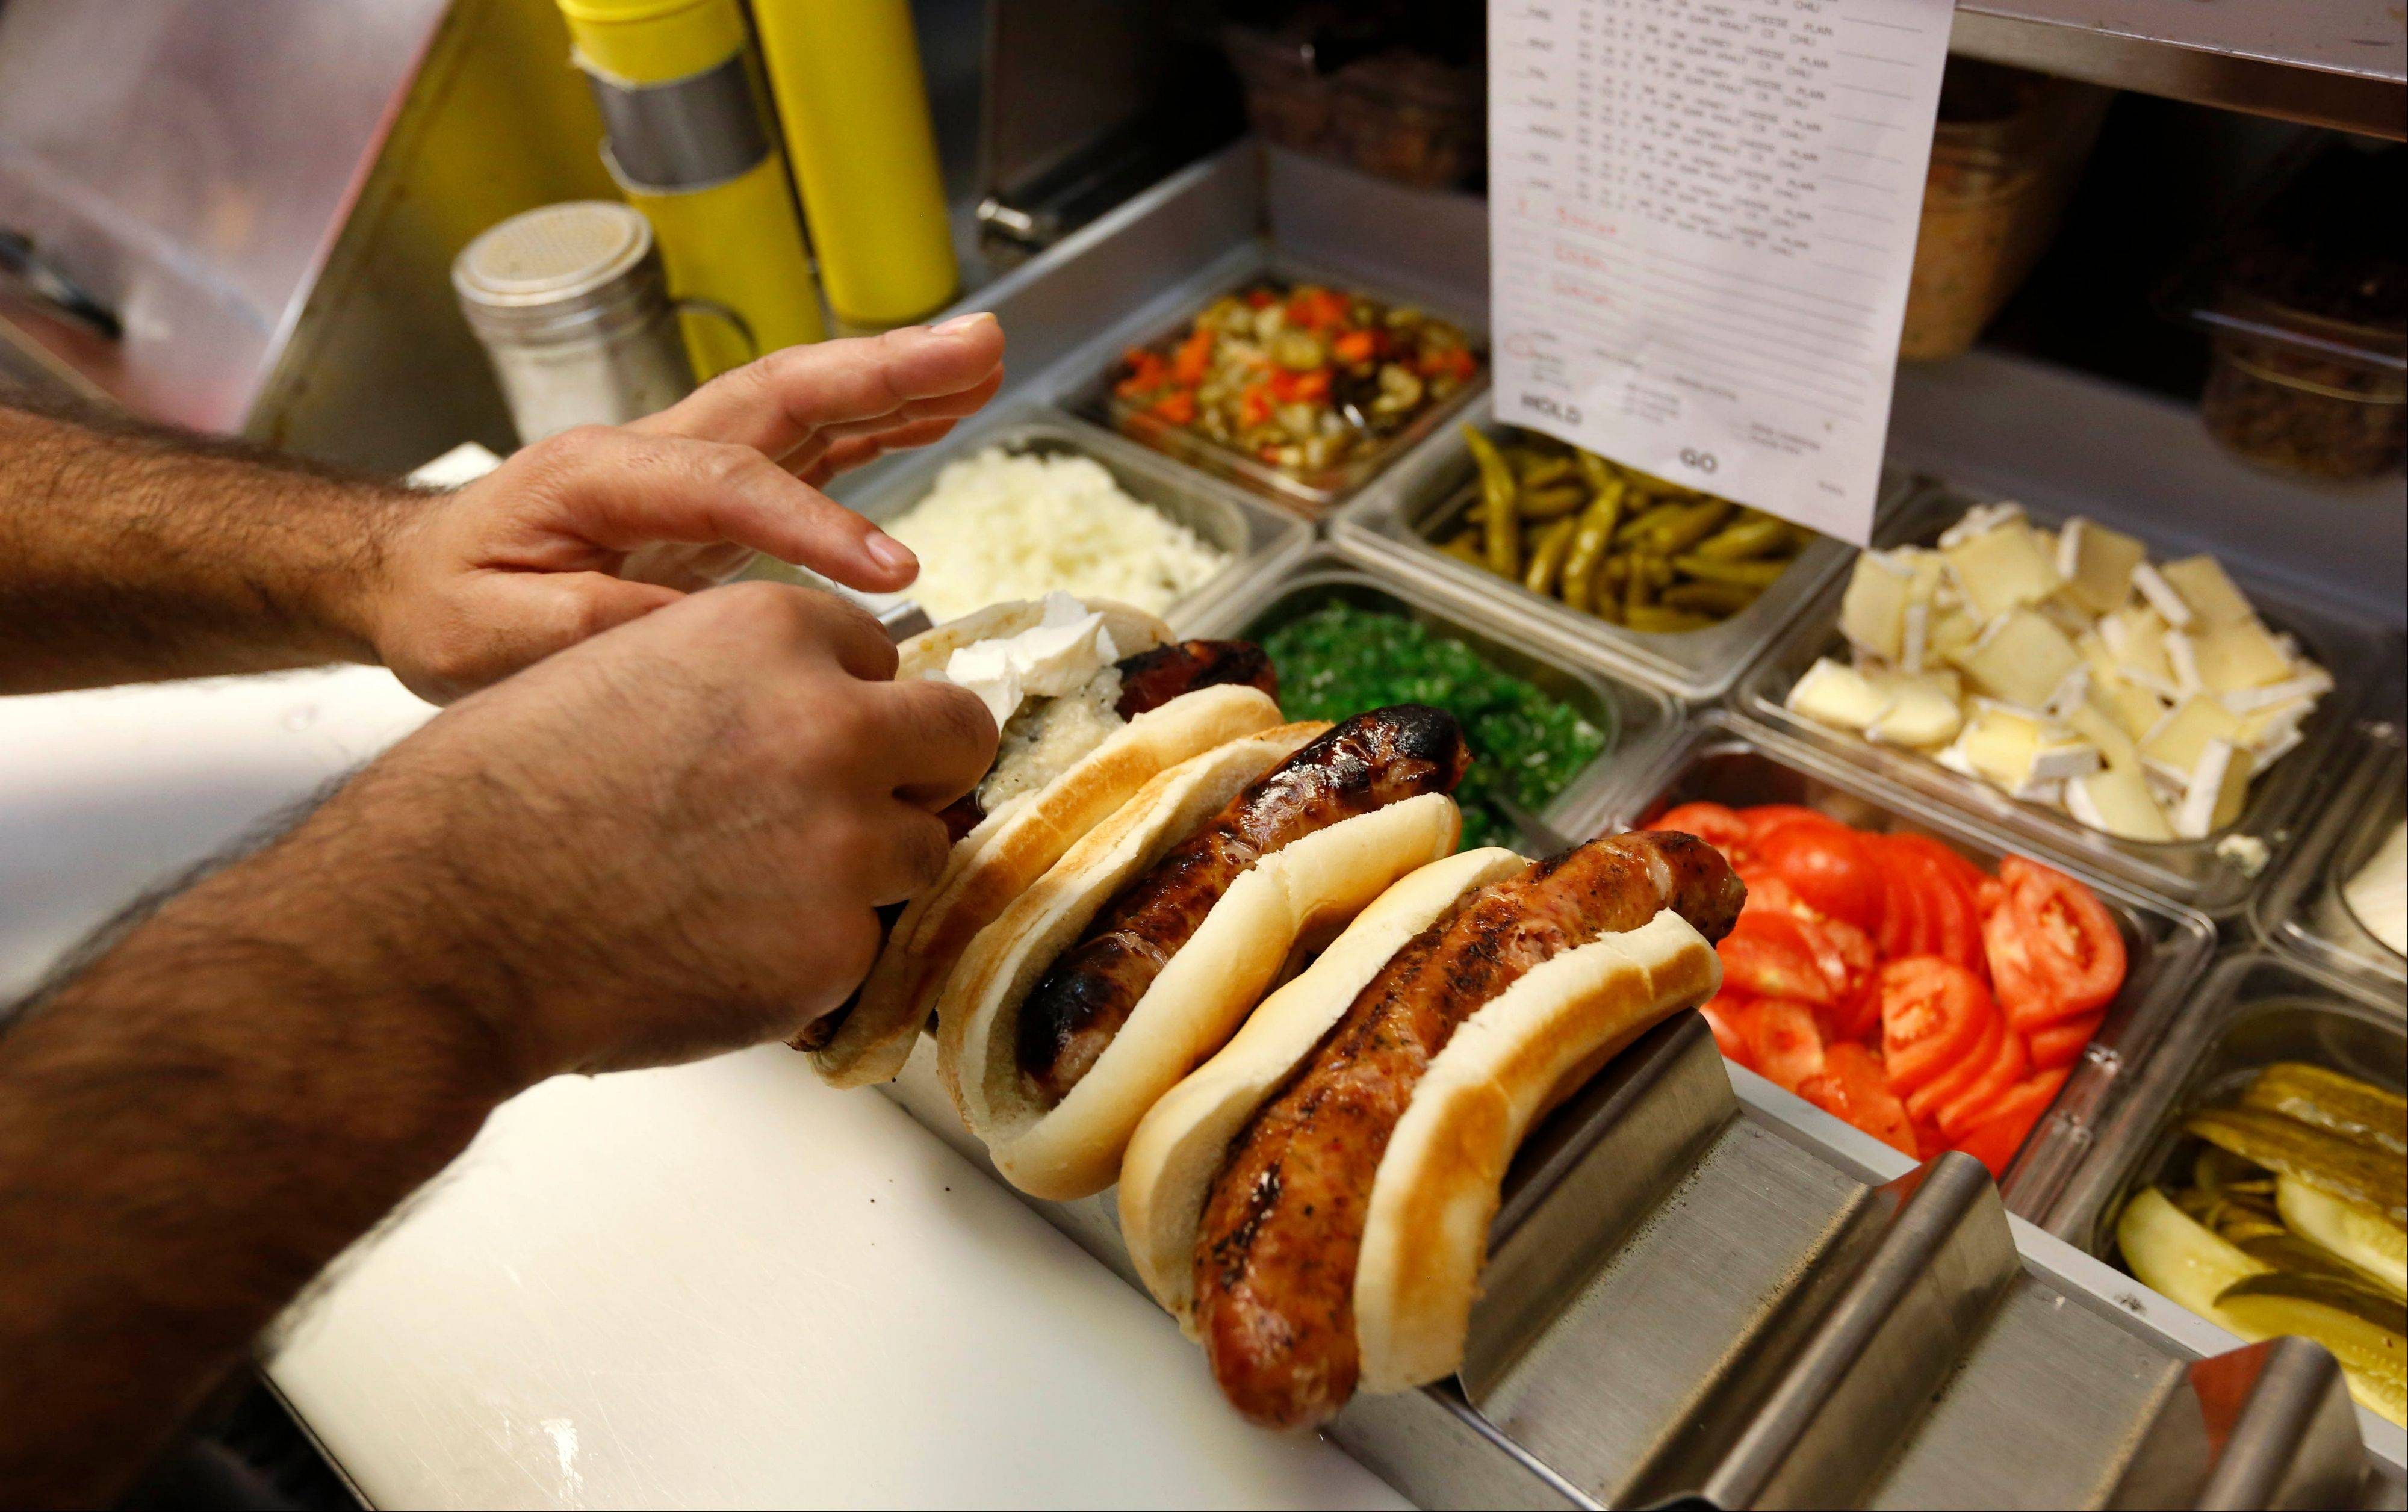 The gourmet sausages at Hot Doug's might get dressed with cherry-apricot mustard, double cr�me brie cheese and pate de campagne.